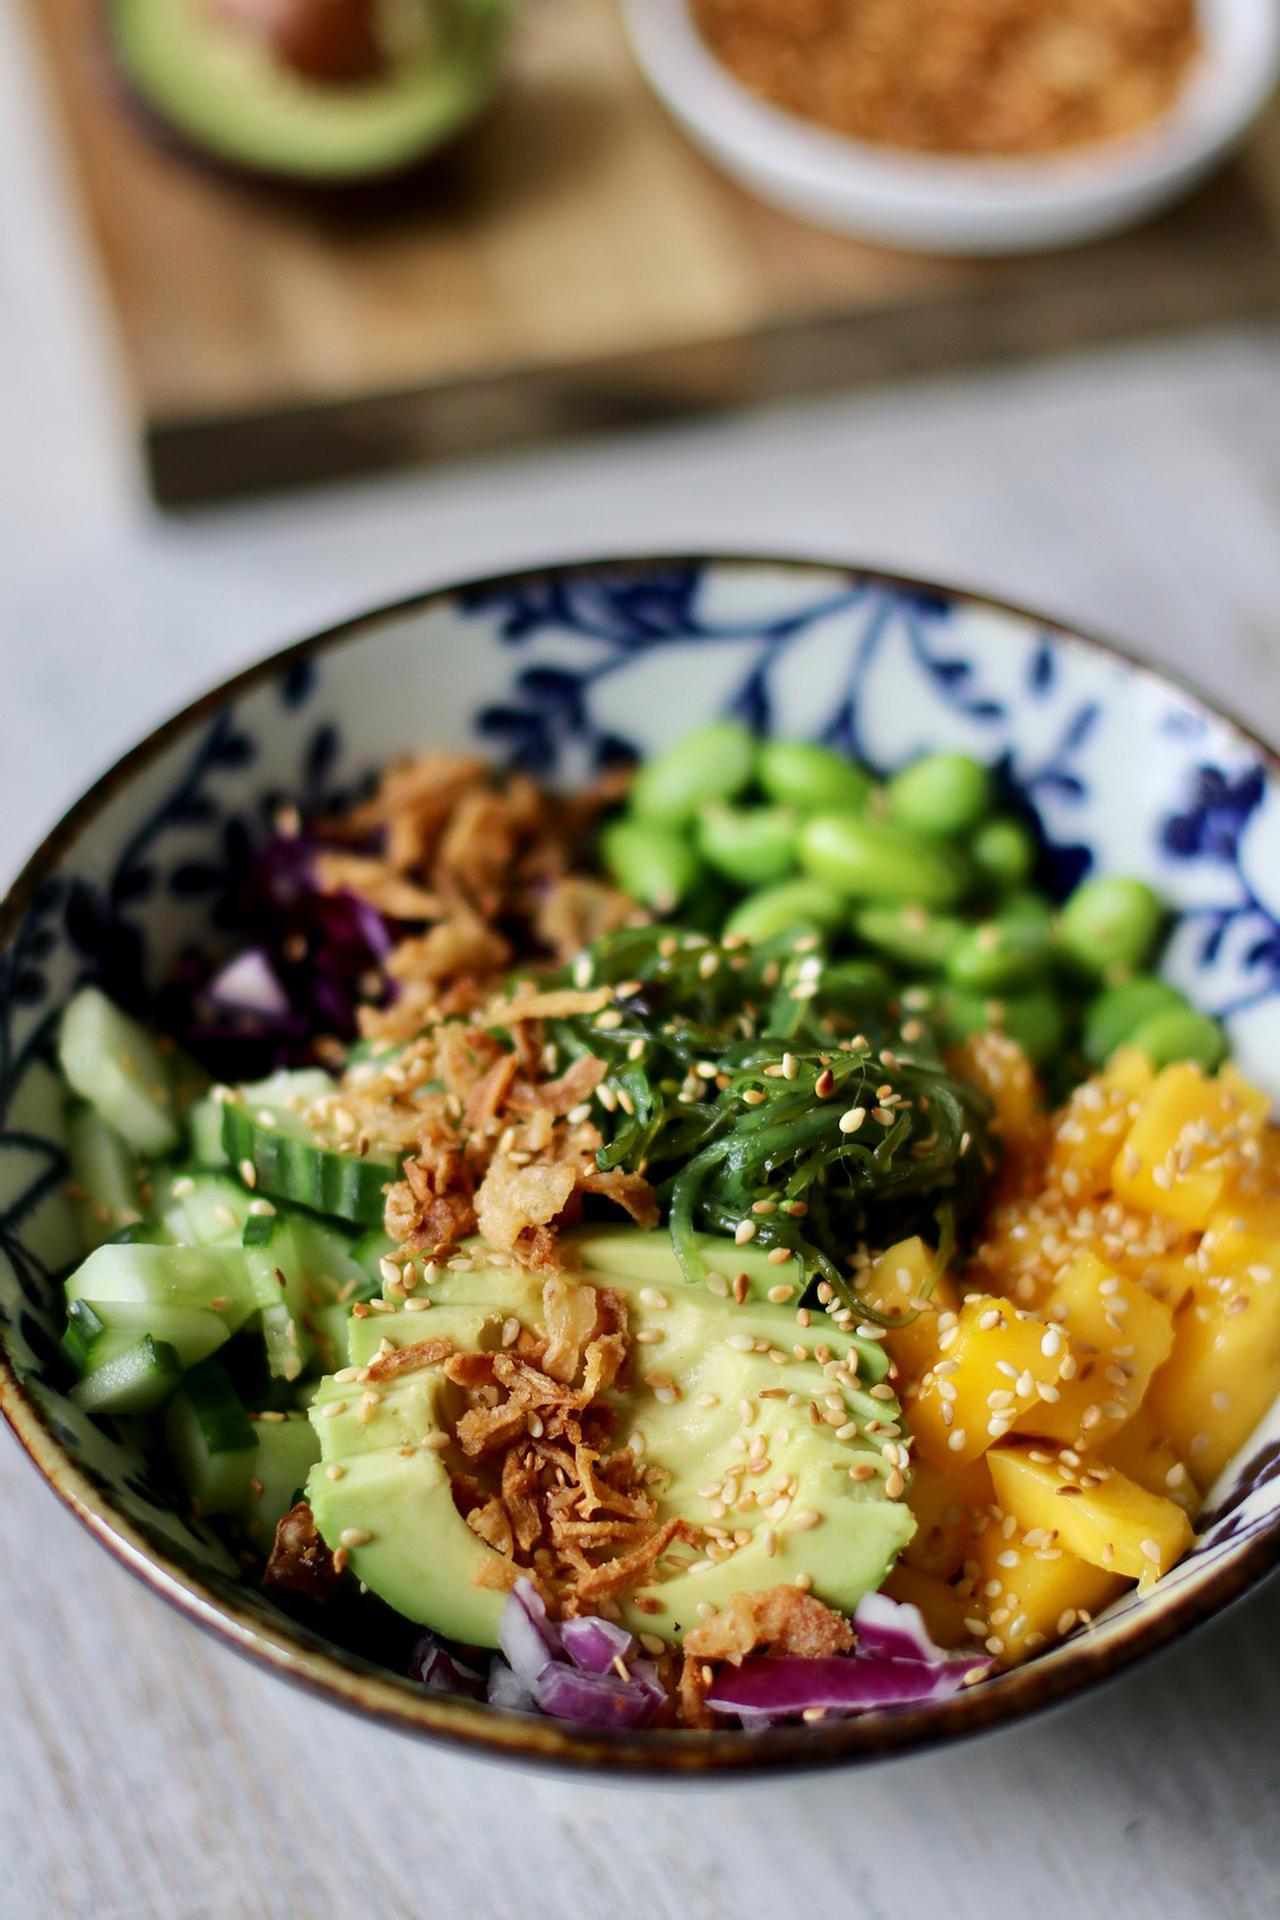 Main image of Deconstructed Sushi Bowl with Sweet Sesame Dressing